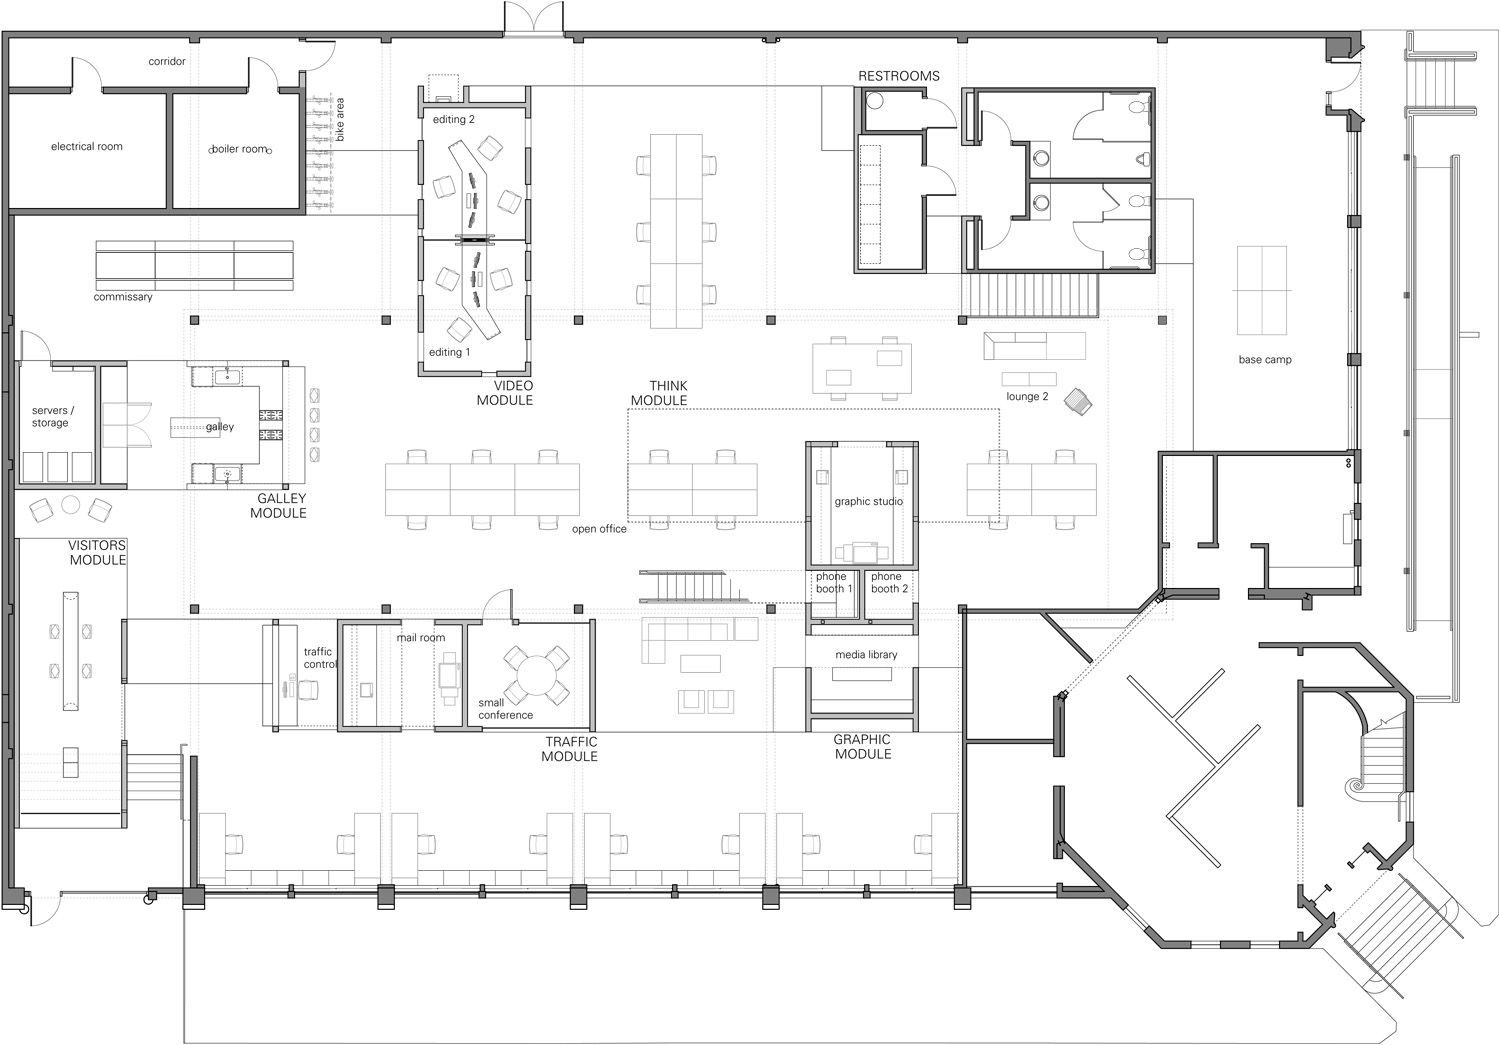 North skylab architecture office floor plan office for Architecture design blueprint